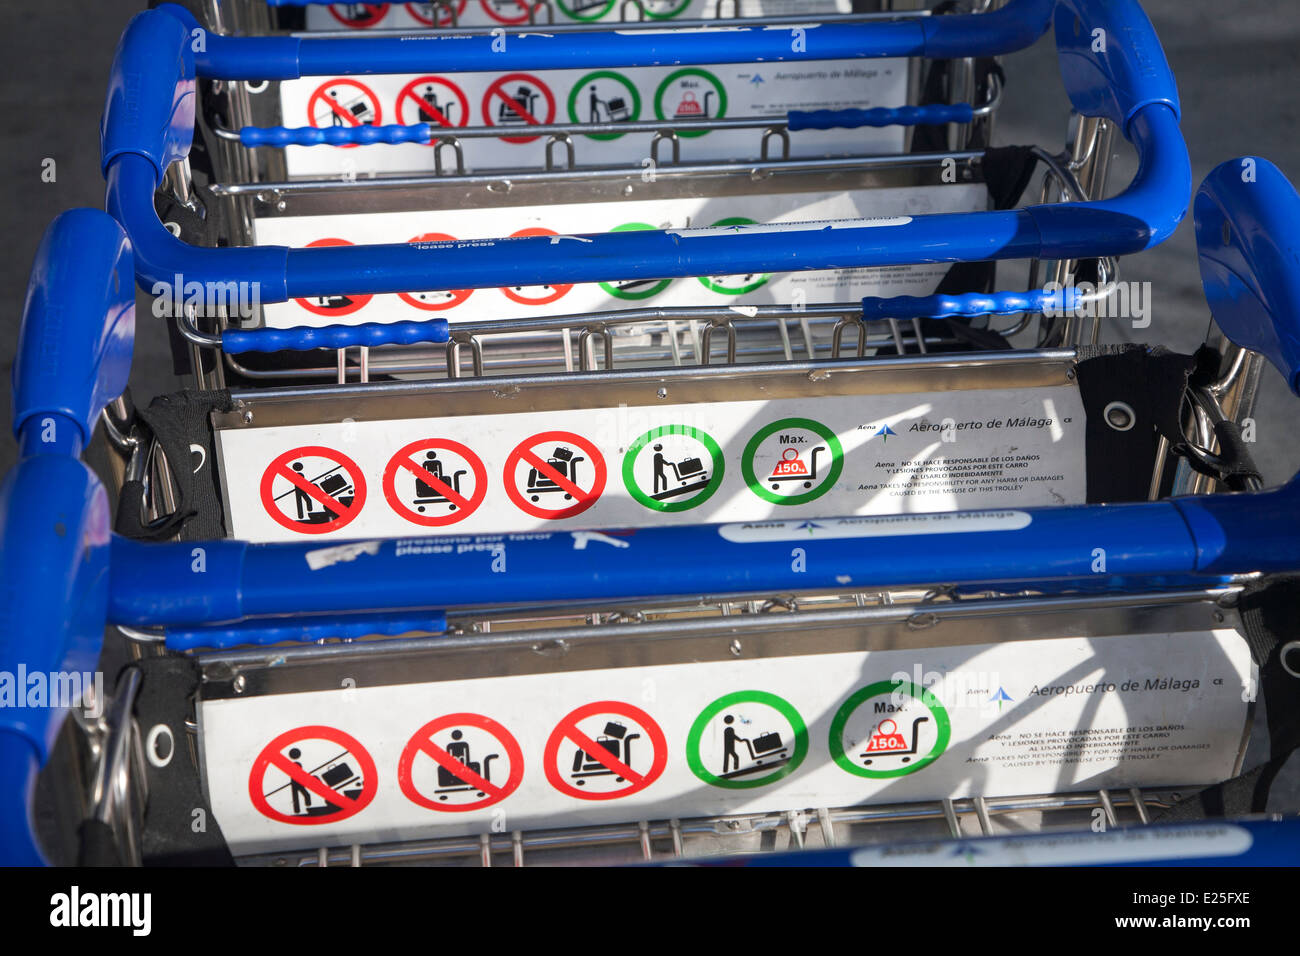 Close up of line of stacked luggage trolleys with rules about use, Malaga airport, Spain - Stock Image